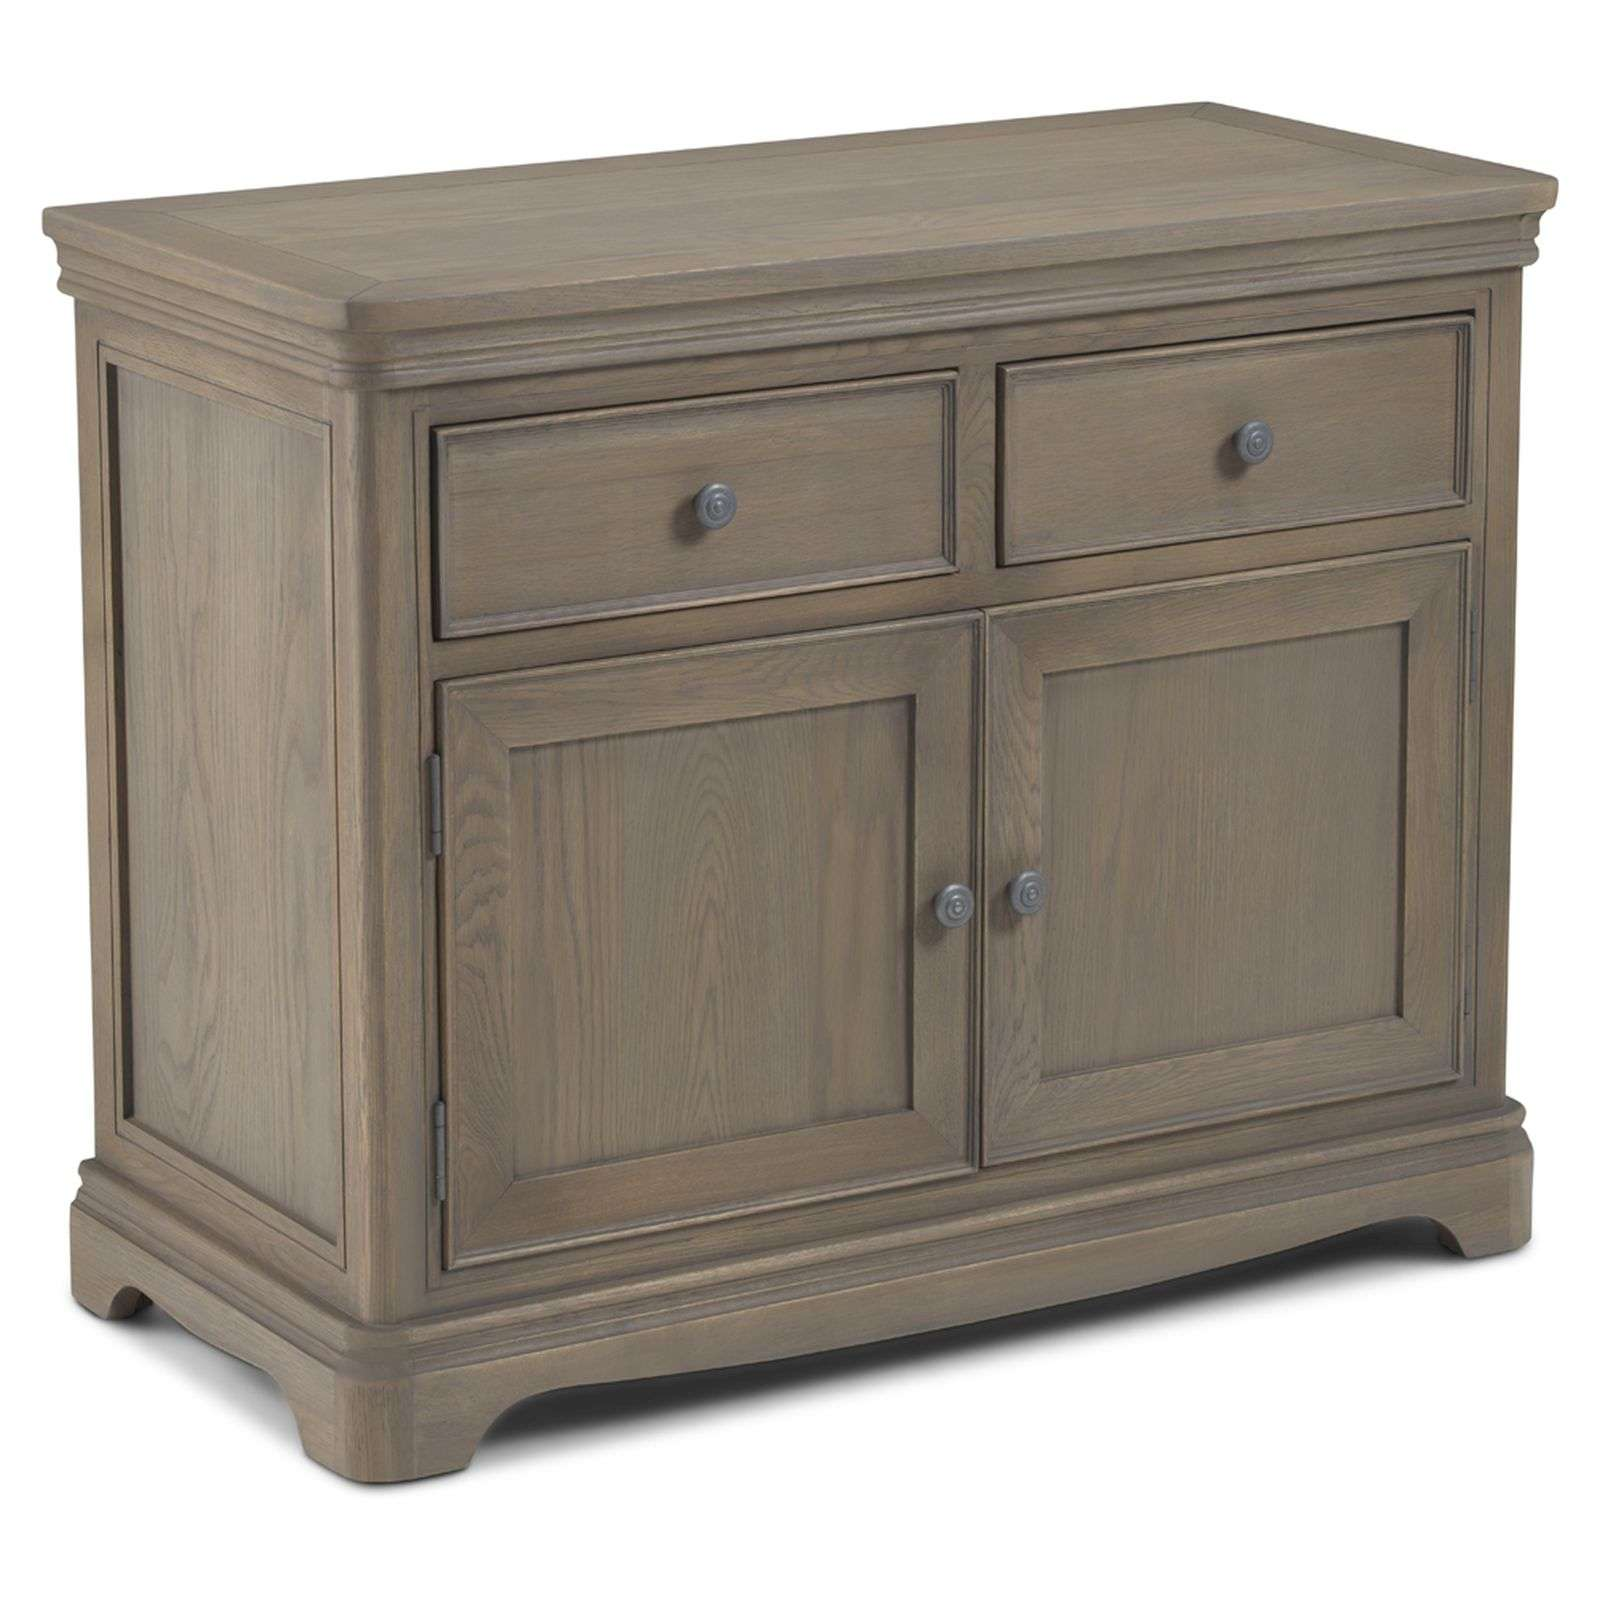 Welford Oak Grey Small Sideboard Available Online Now